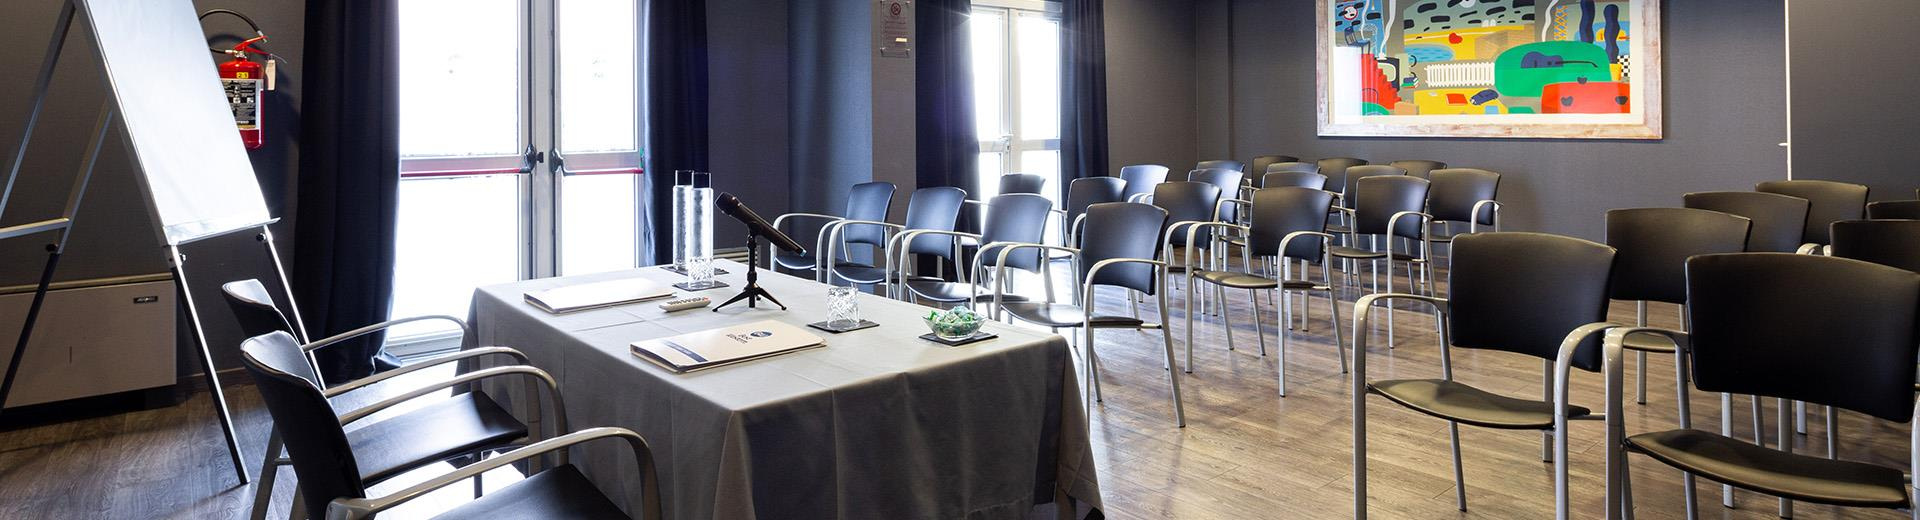 Modern meeting rooms in Vicenza at the BW Hotel Aries